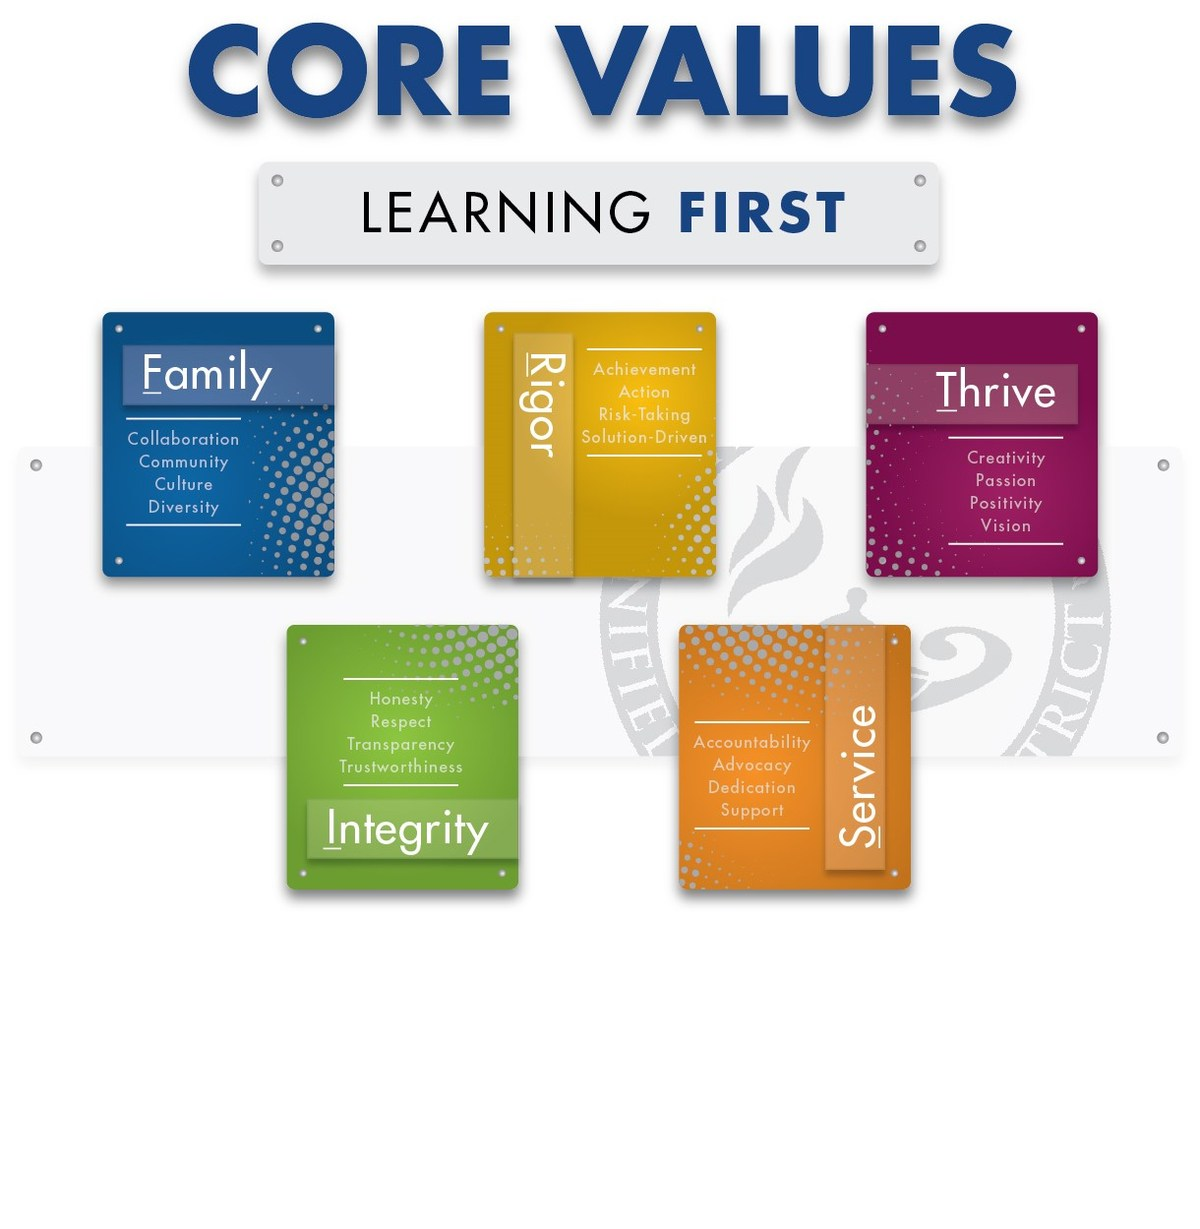 Core Values Image, Family, Rigor, Thrive, Integrity, Service